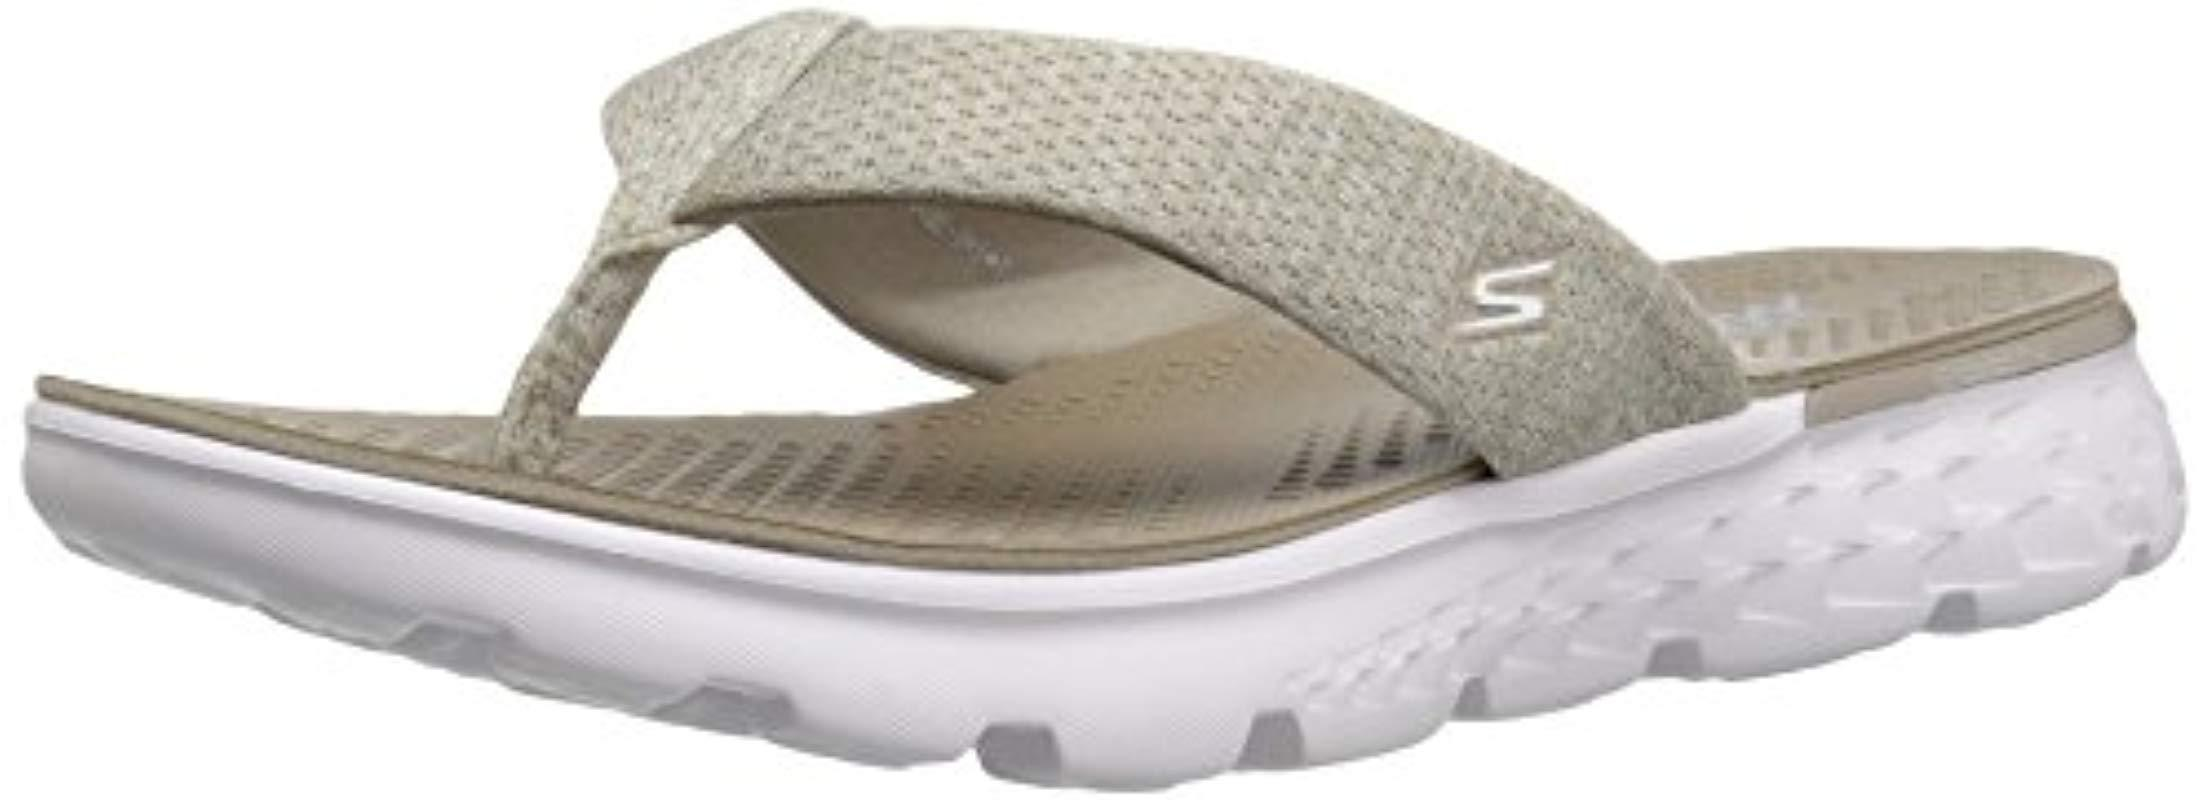 a2ee434692c Lyst - Skechers Performance On The Go 400 Vivacity Flip Flop in ...